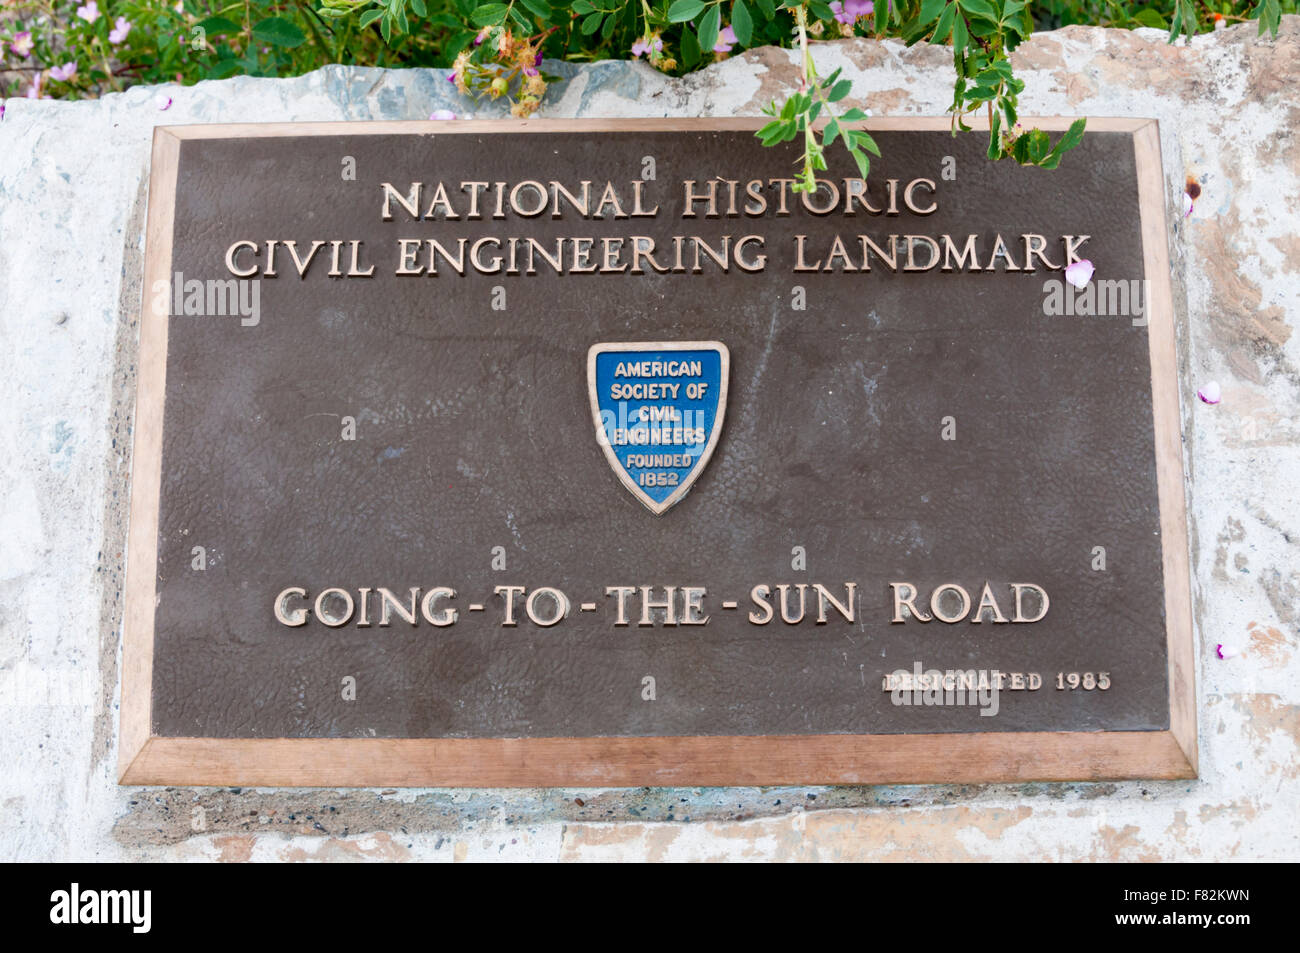 Plaque recording designation of Going-To-The-Sun Road in Glacier National Park as National Historic Civil Engineering - Stock Image